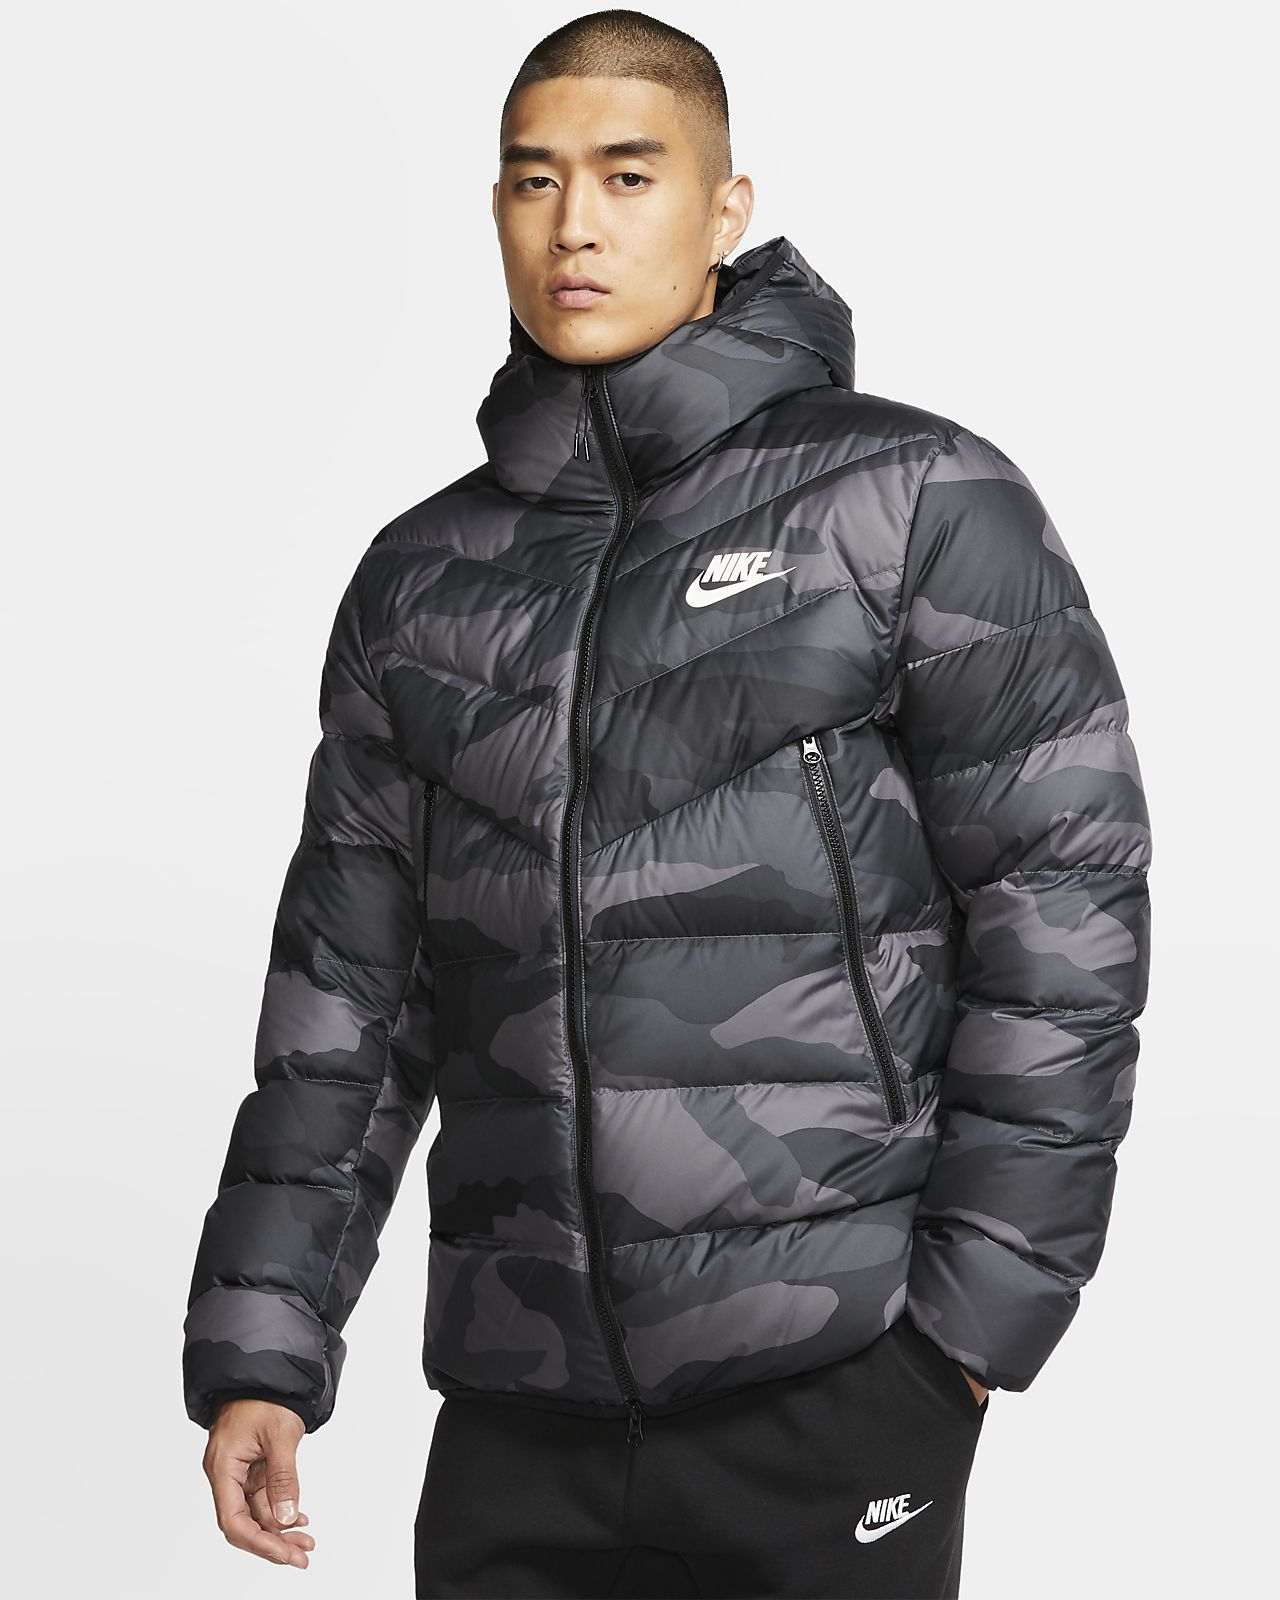 Details about Nike Sportswear Down Fill Windrunner Printed Hooded Jacket Men's Blue BV4763 744